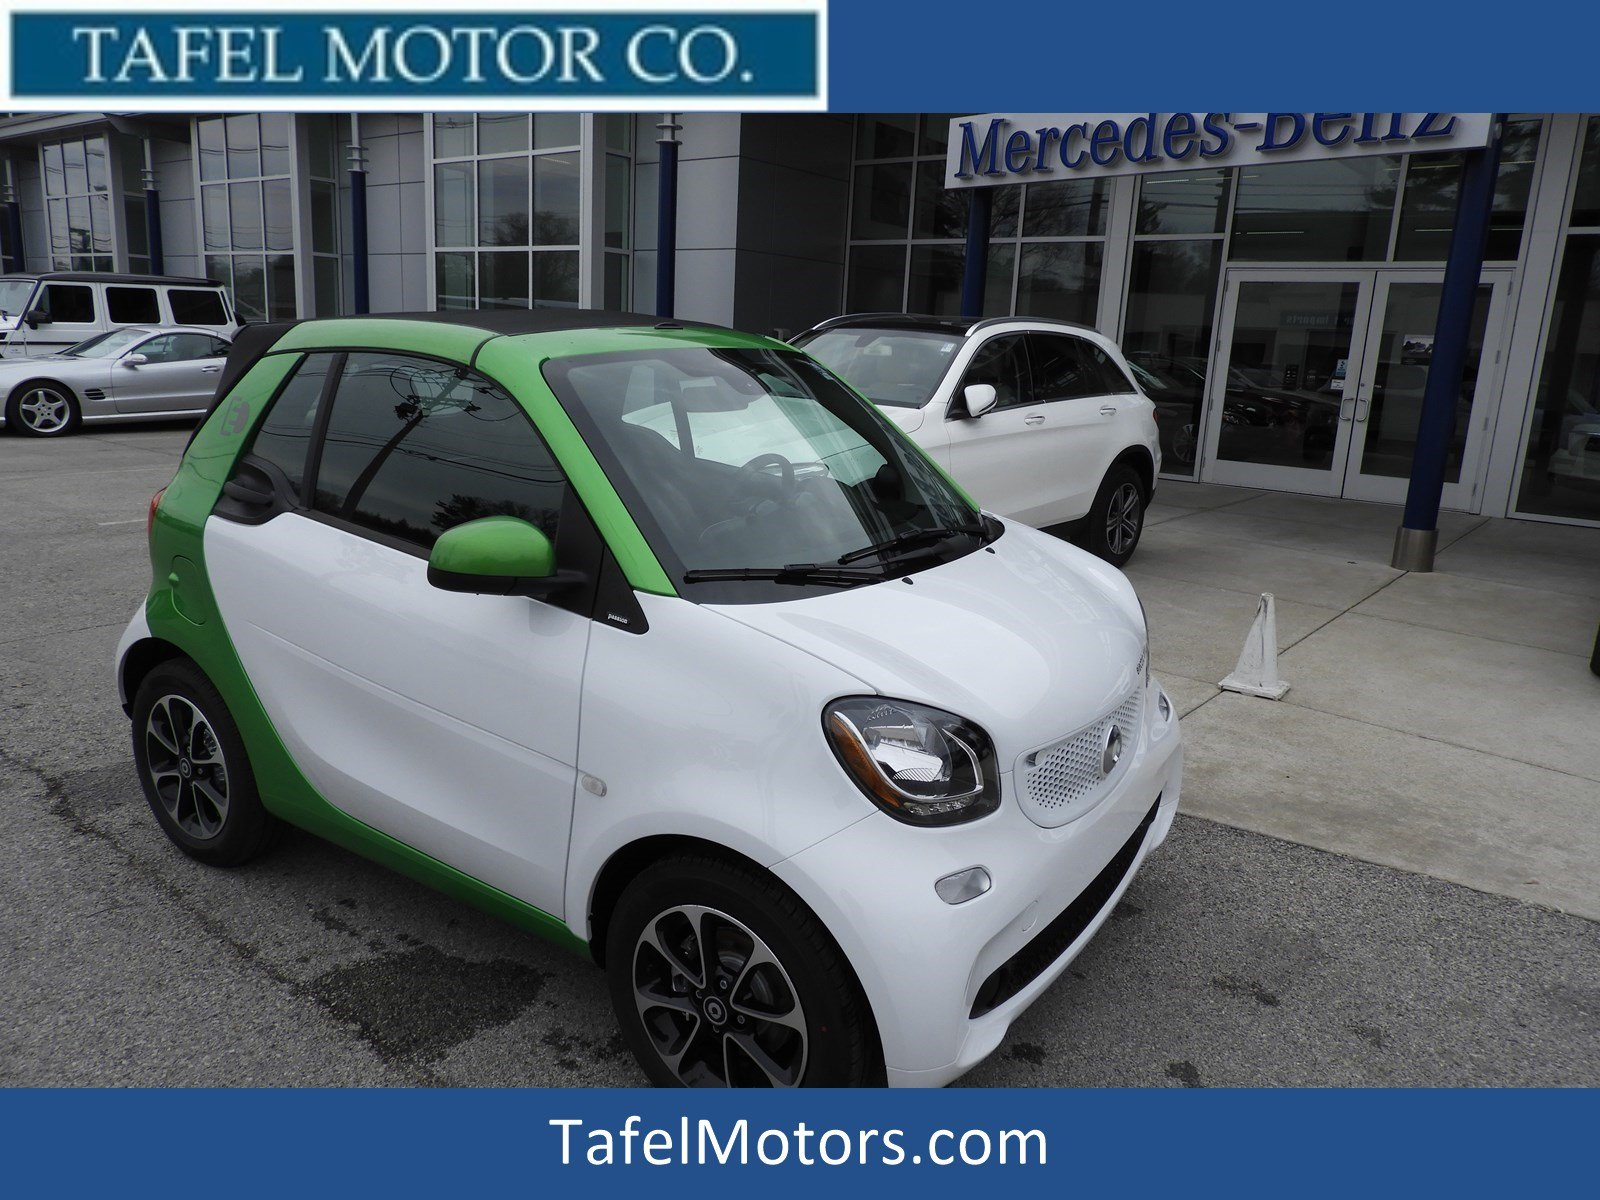 New 2017 Smart Fortwo Electric Drive Pion Cabriolet